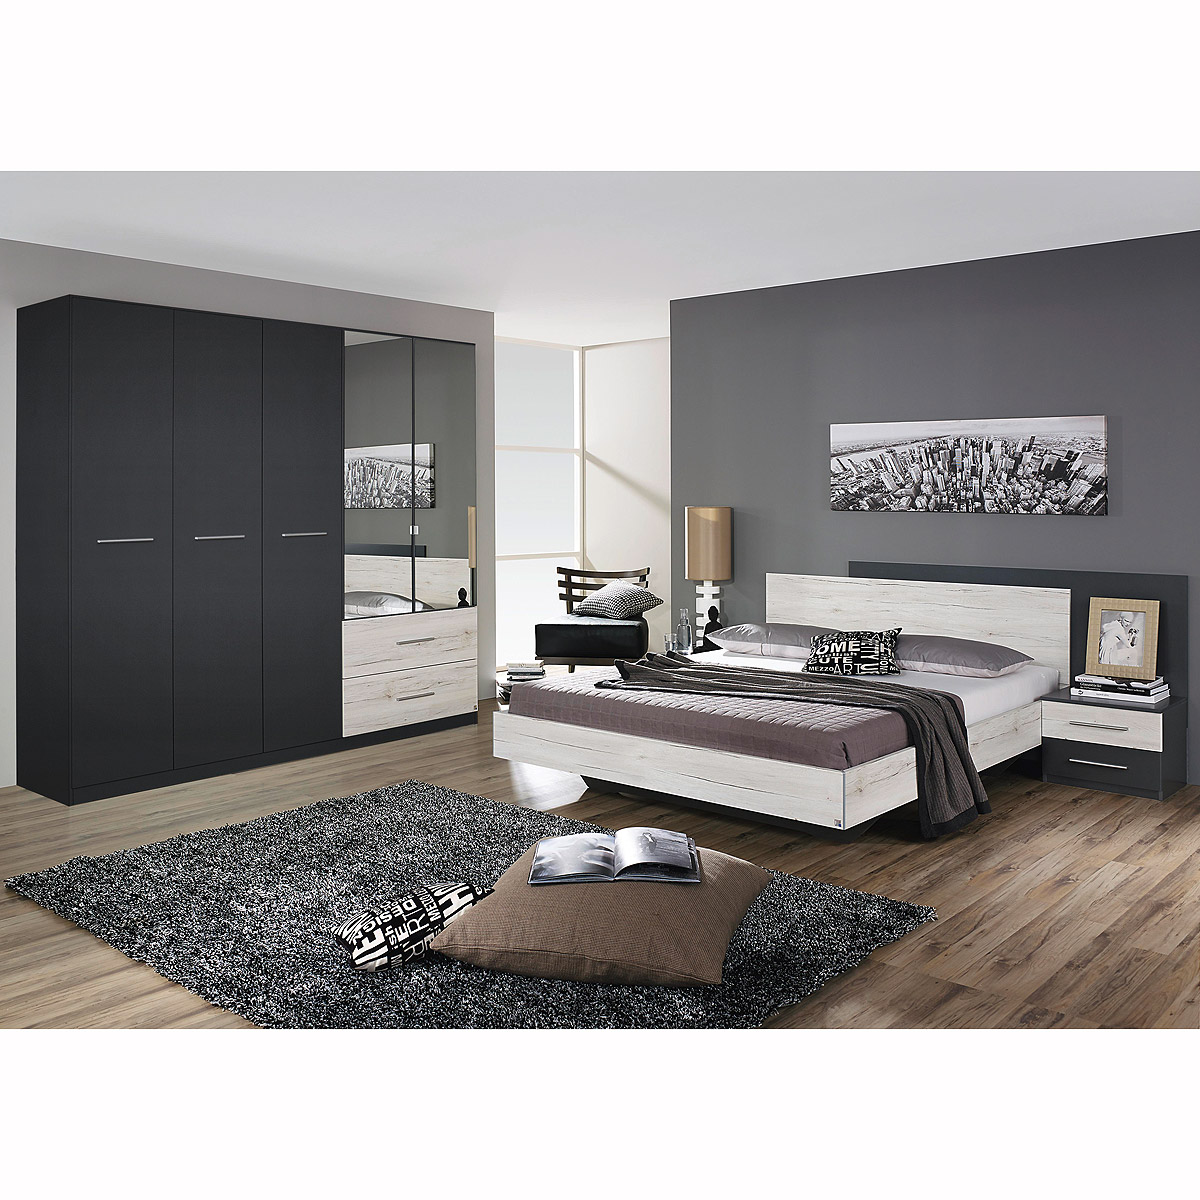 schlafzimmer t rkis lila inspiration f r die gestaltung der besten r ume. Black Bedroom Furniture Sets. Home Design Ideas